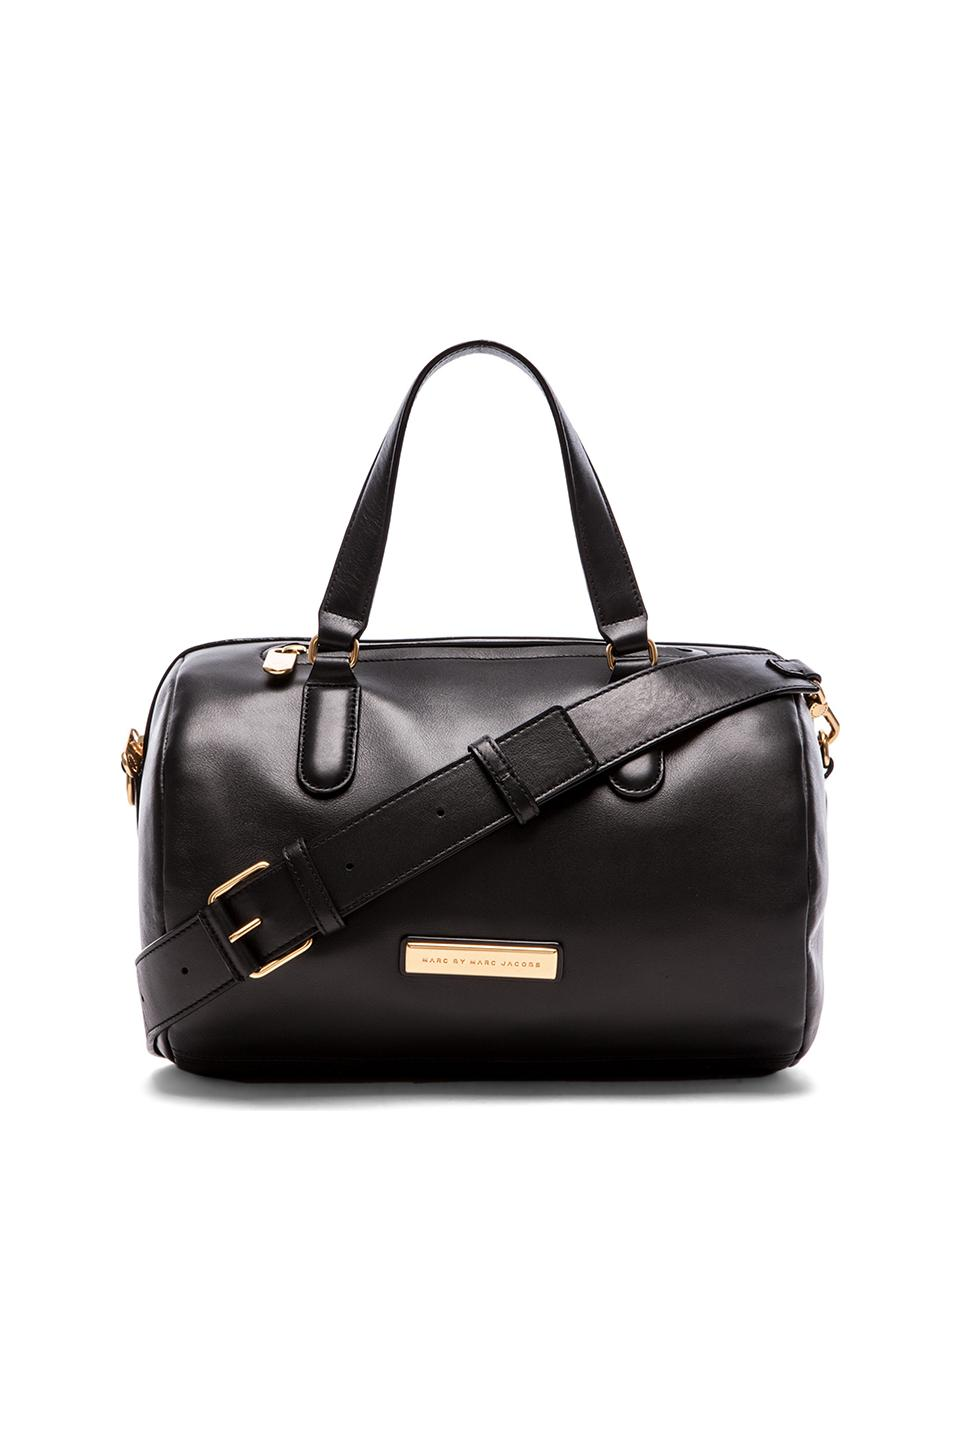 Marc by Marc Jacobs Luna Satchel in Black